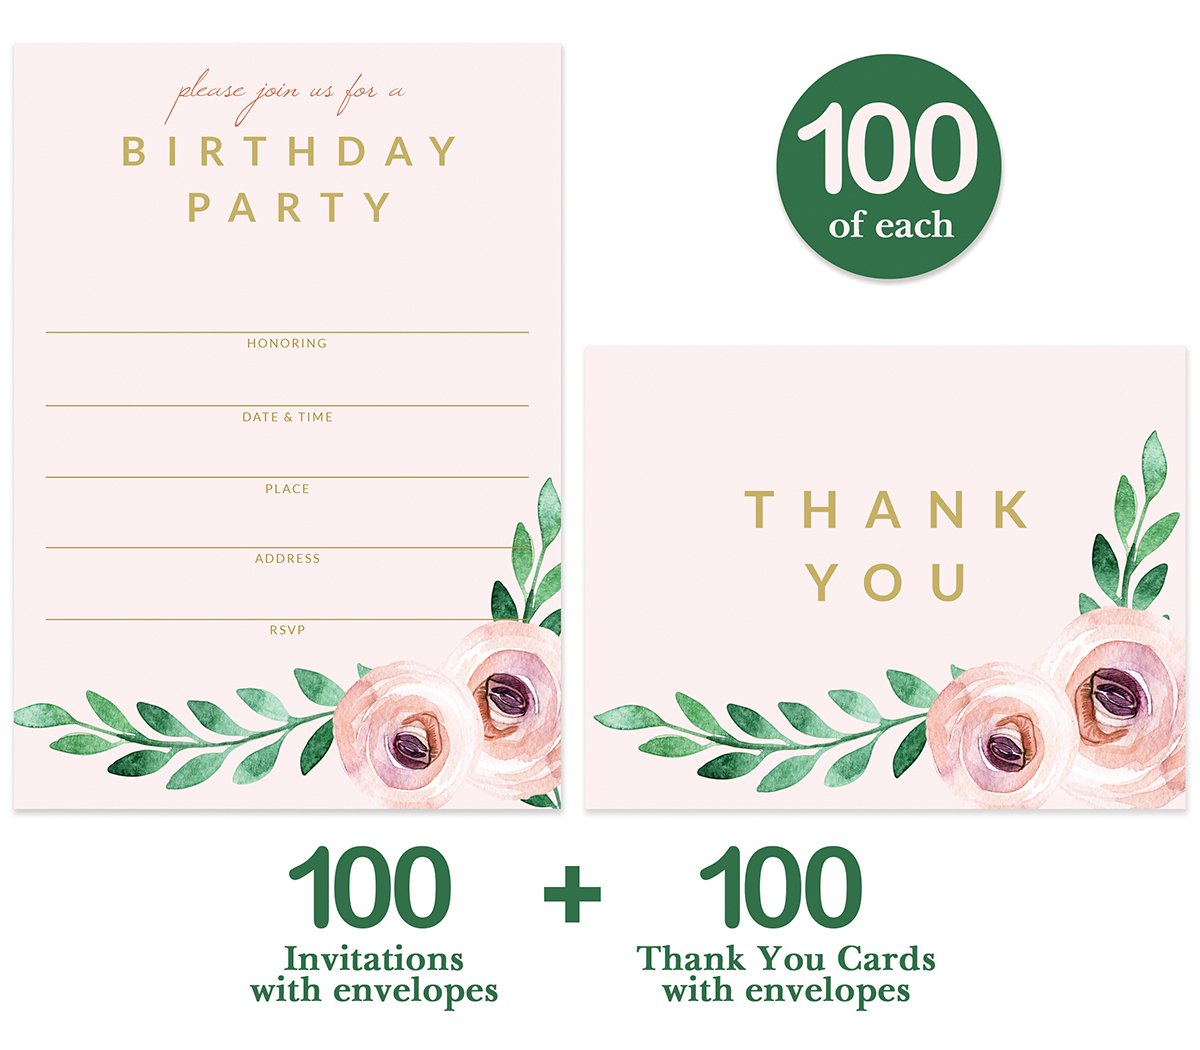 Birthday Party Invitations ( 100 ) & Matched Thank You Notes ( 100 ) Set with Envelopes, Great for Large Celebration Female Girl Young Woman Birthday Fill-in Invites & Blank Thank You Cards Best Value by Digibuddha (Image #2)